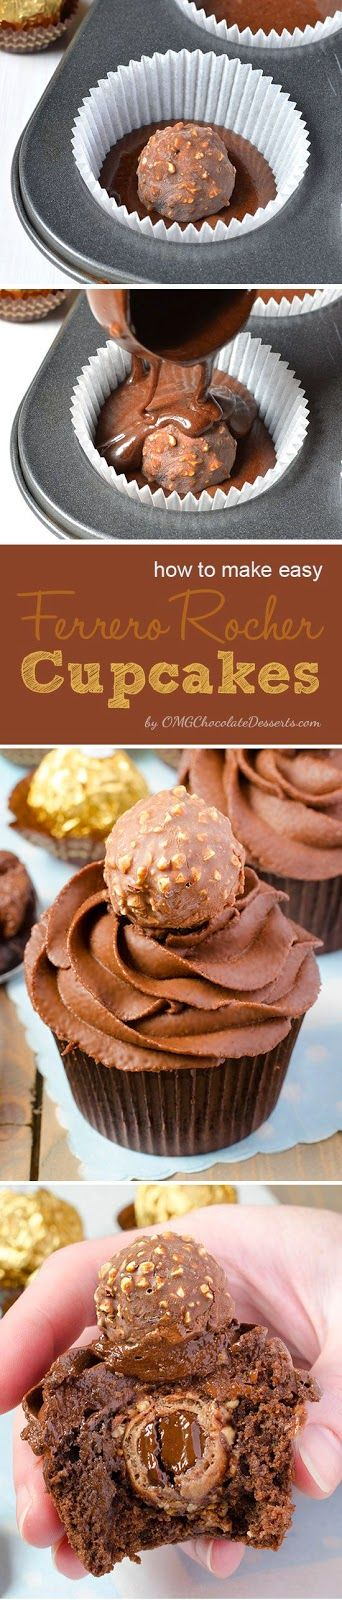 all-food-drink: Ferrero Rocher Cupcakes